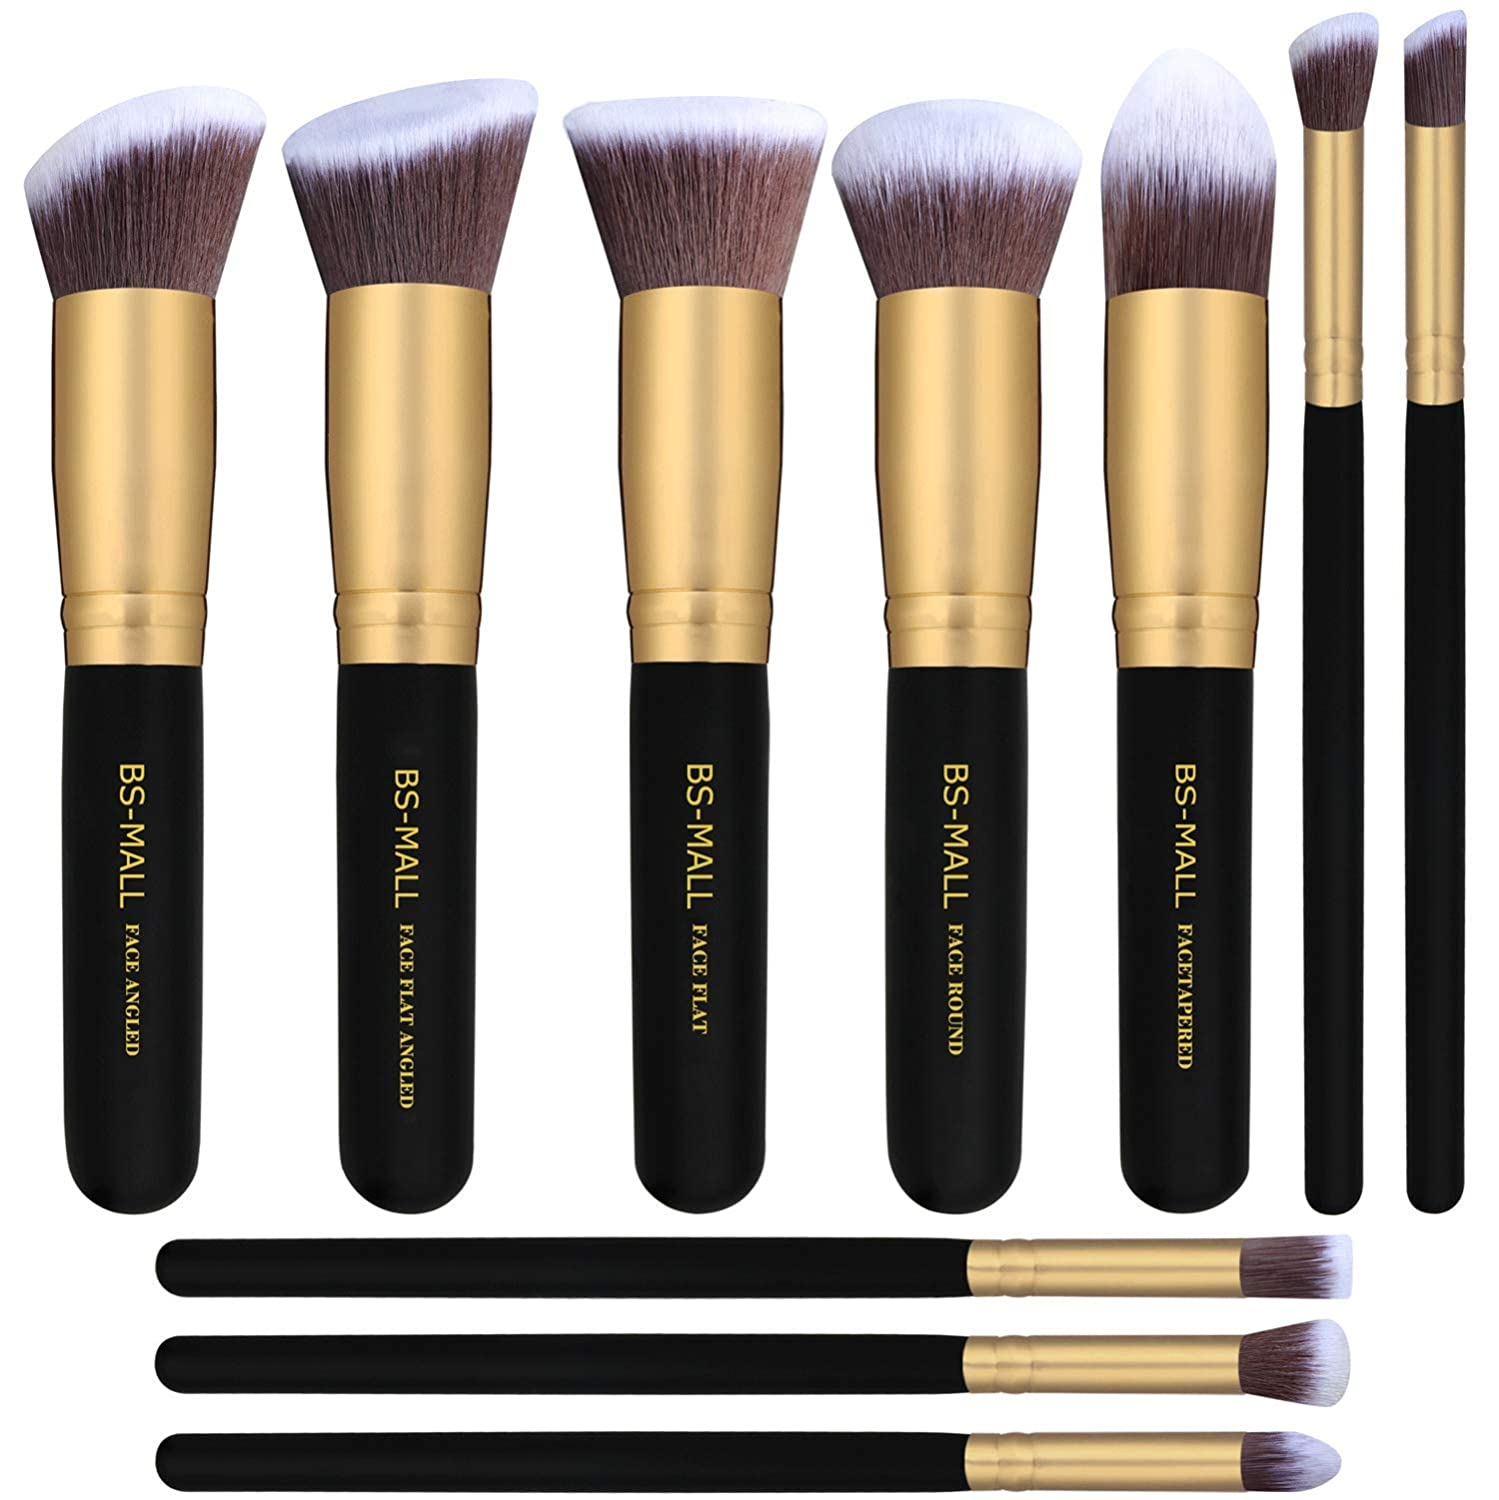 BS-MALL New Premium Synthetic Kabuki Makeup Brush Set Cosmetics Foundation Blending Blush Eyeliner Face Powder Brush Makeup Brush Kit (Silver Purple)